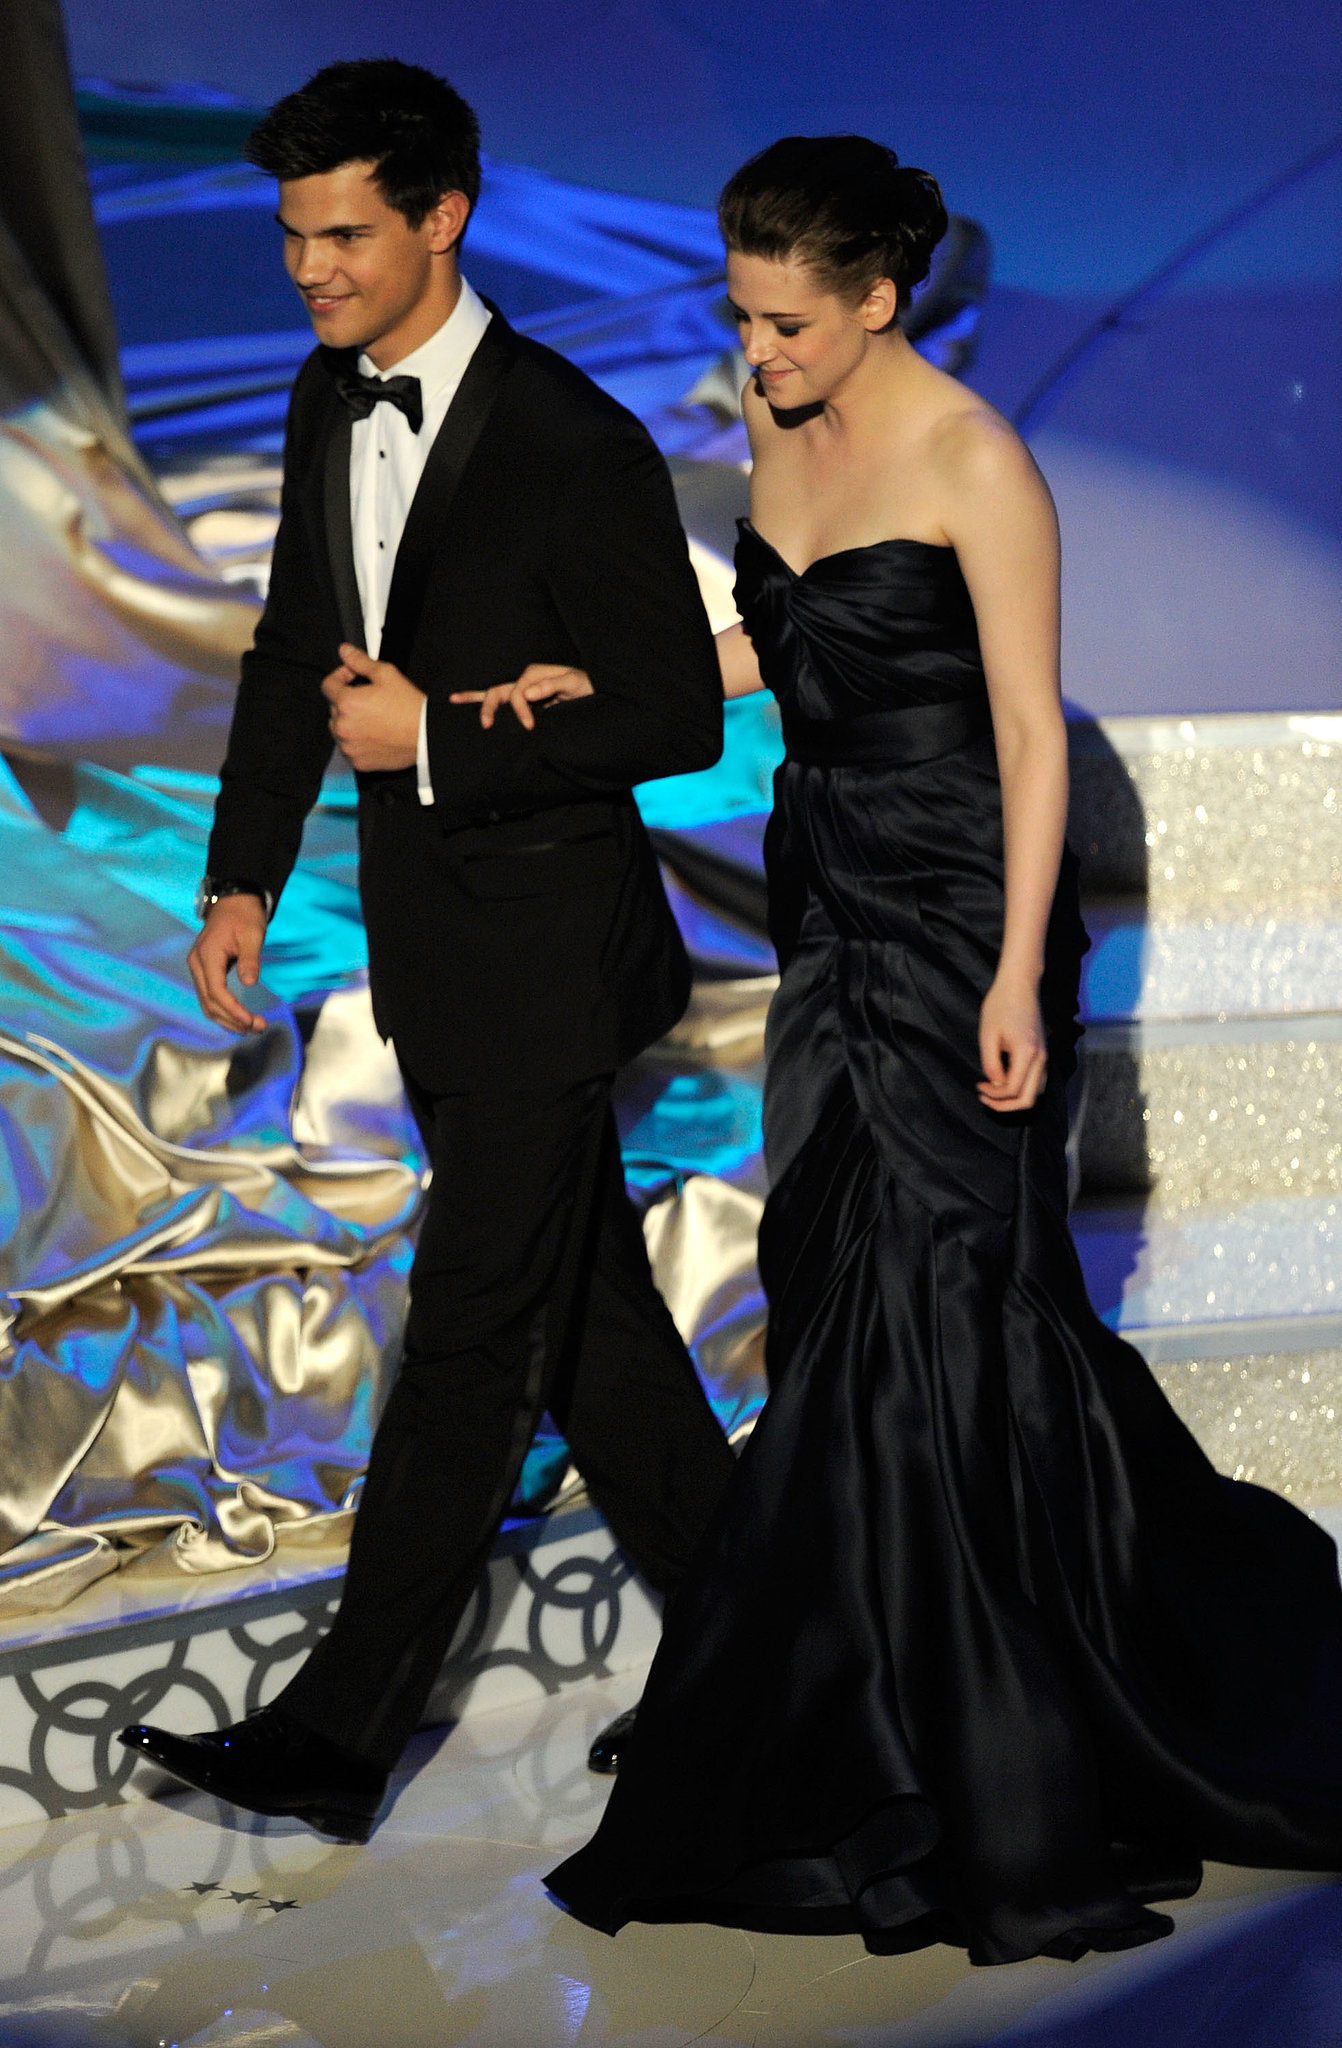 Kristen Stewart and Taylor Lautner presented at the 2010 show.